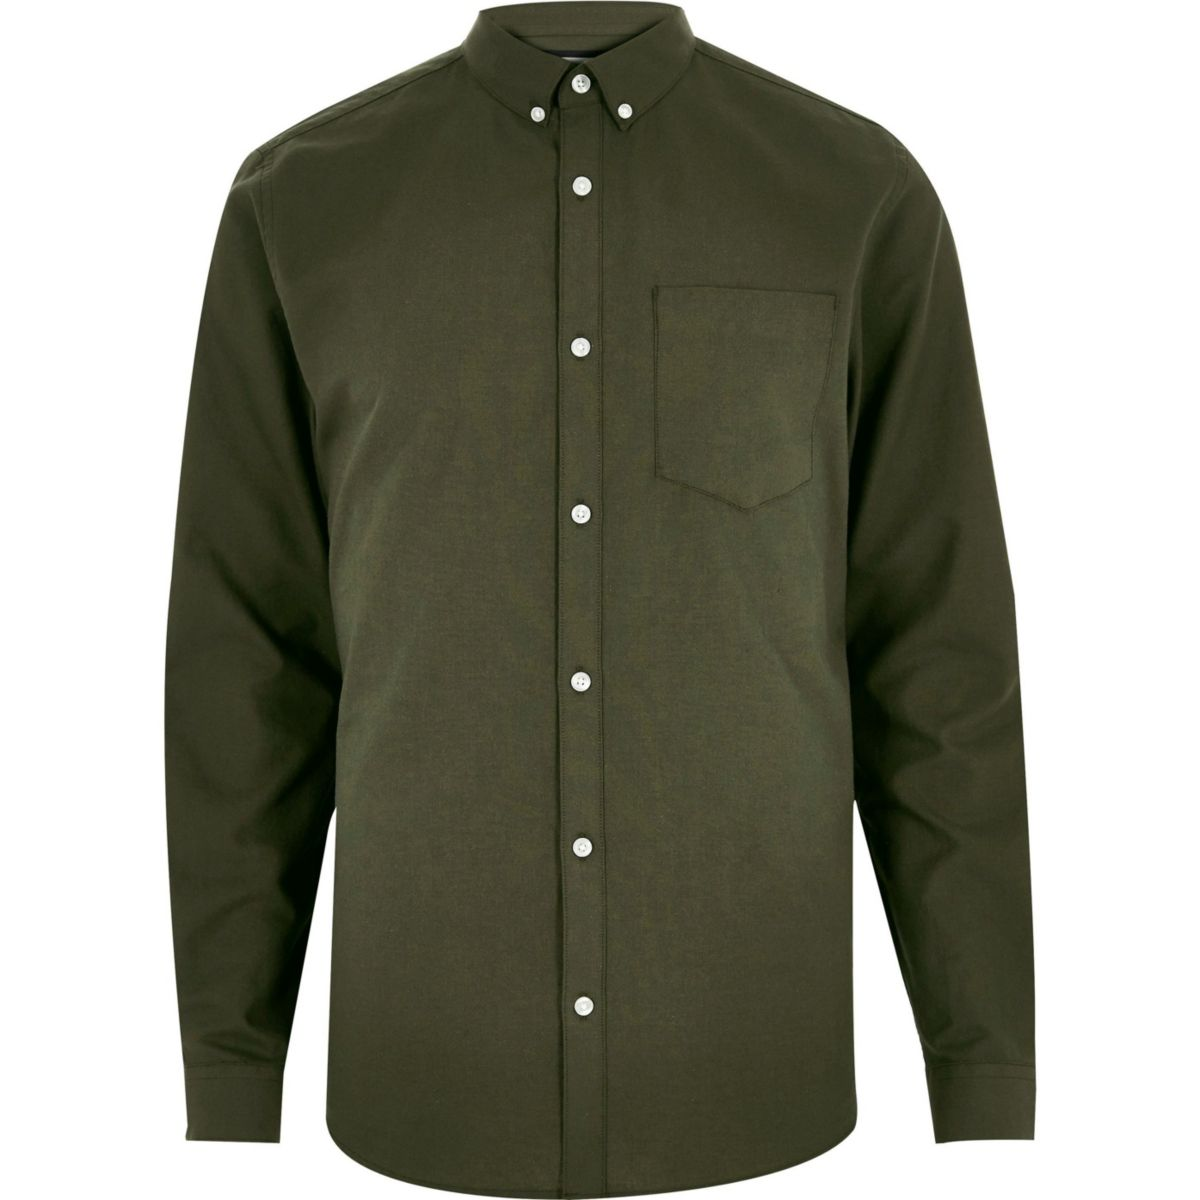 Green casual button-down Oxford shirt